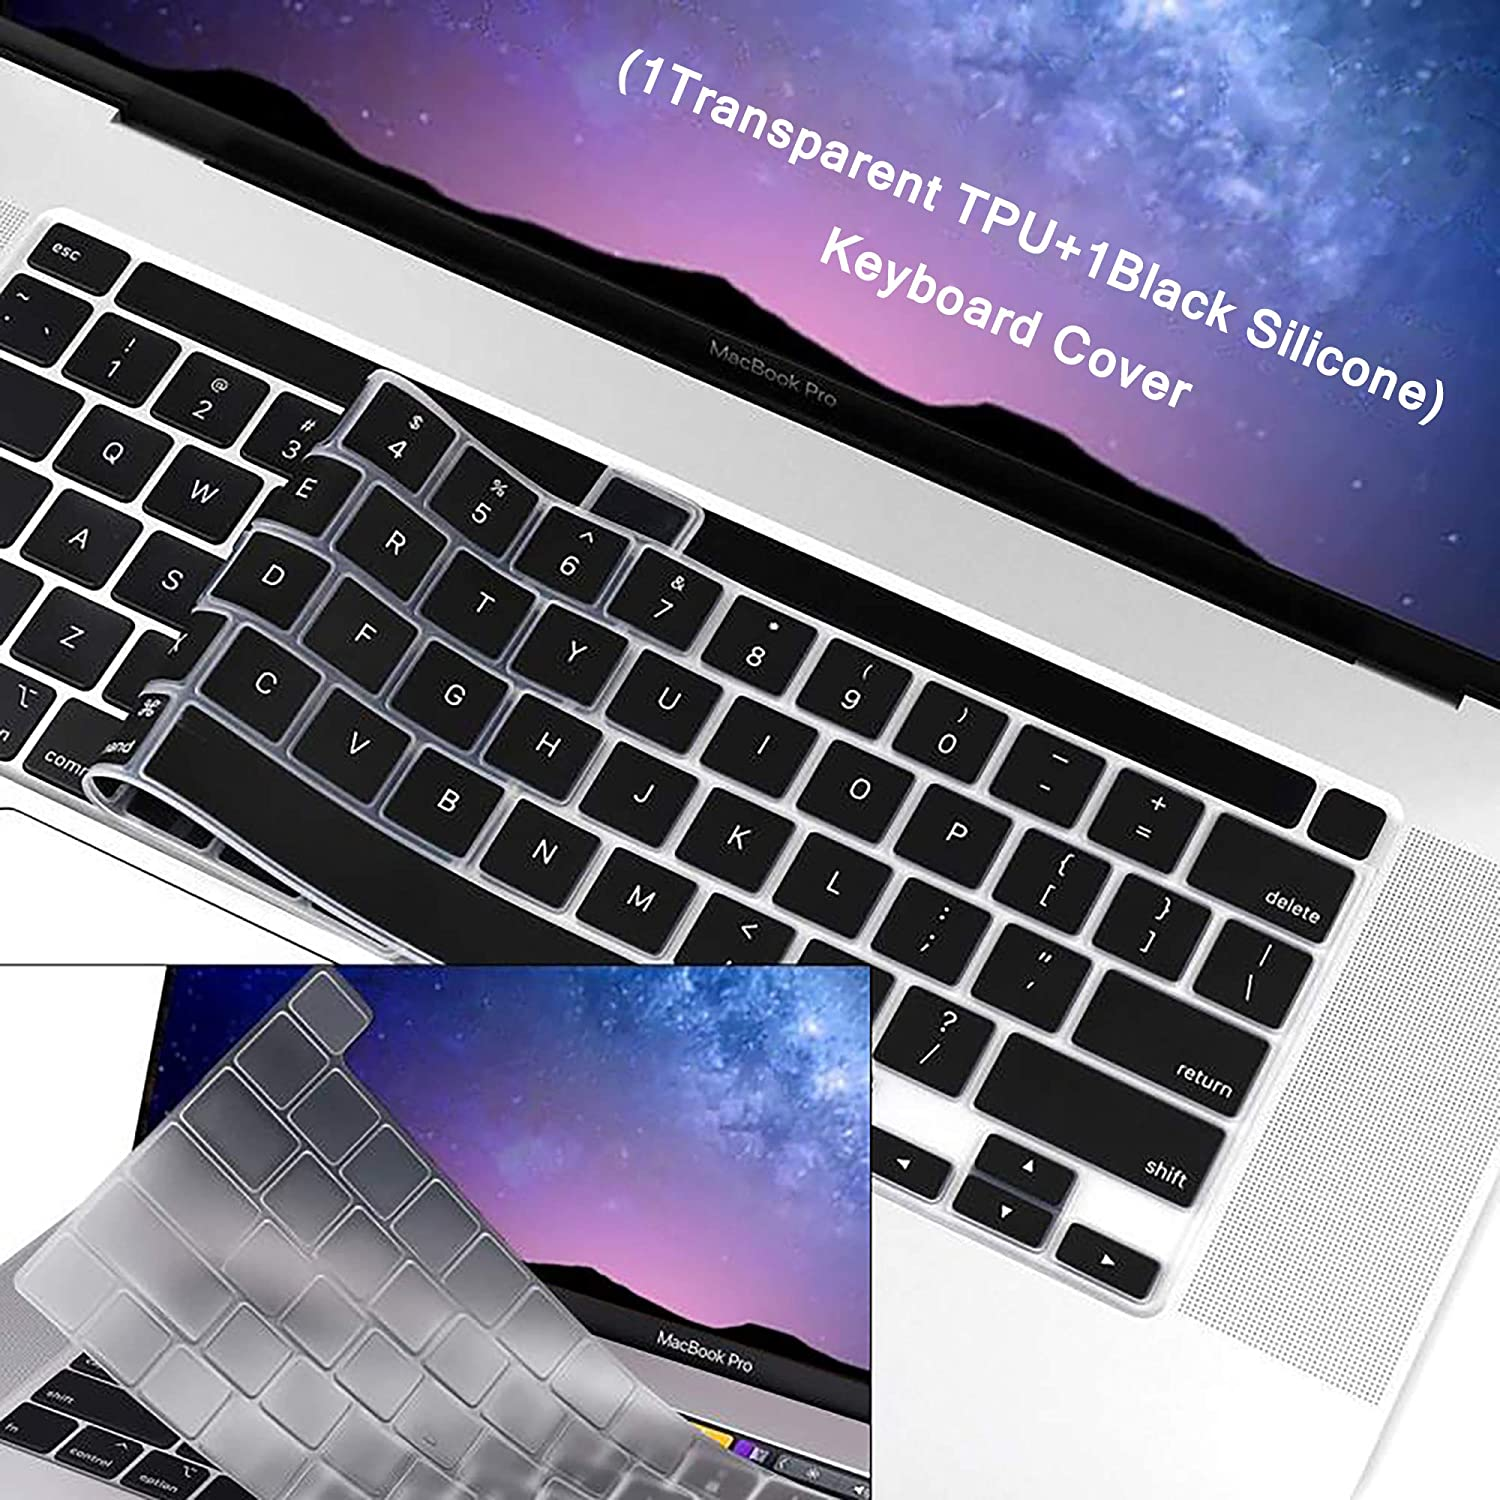 "WENWELL 2pcs Keyboard Cover Skin Compatible with New MacBook Pro 13 inch A2289 A2251 & 2019 MacBook Pro 16"" A2141,1 Silicone + 1 TPU Protective Pretector for 2020 Release Apple Laptop Accessories"